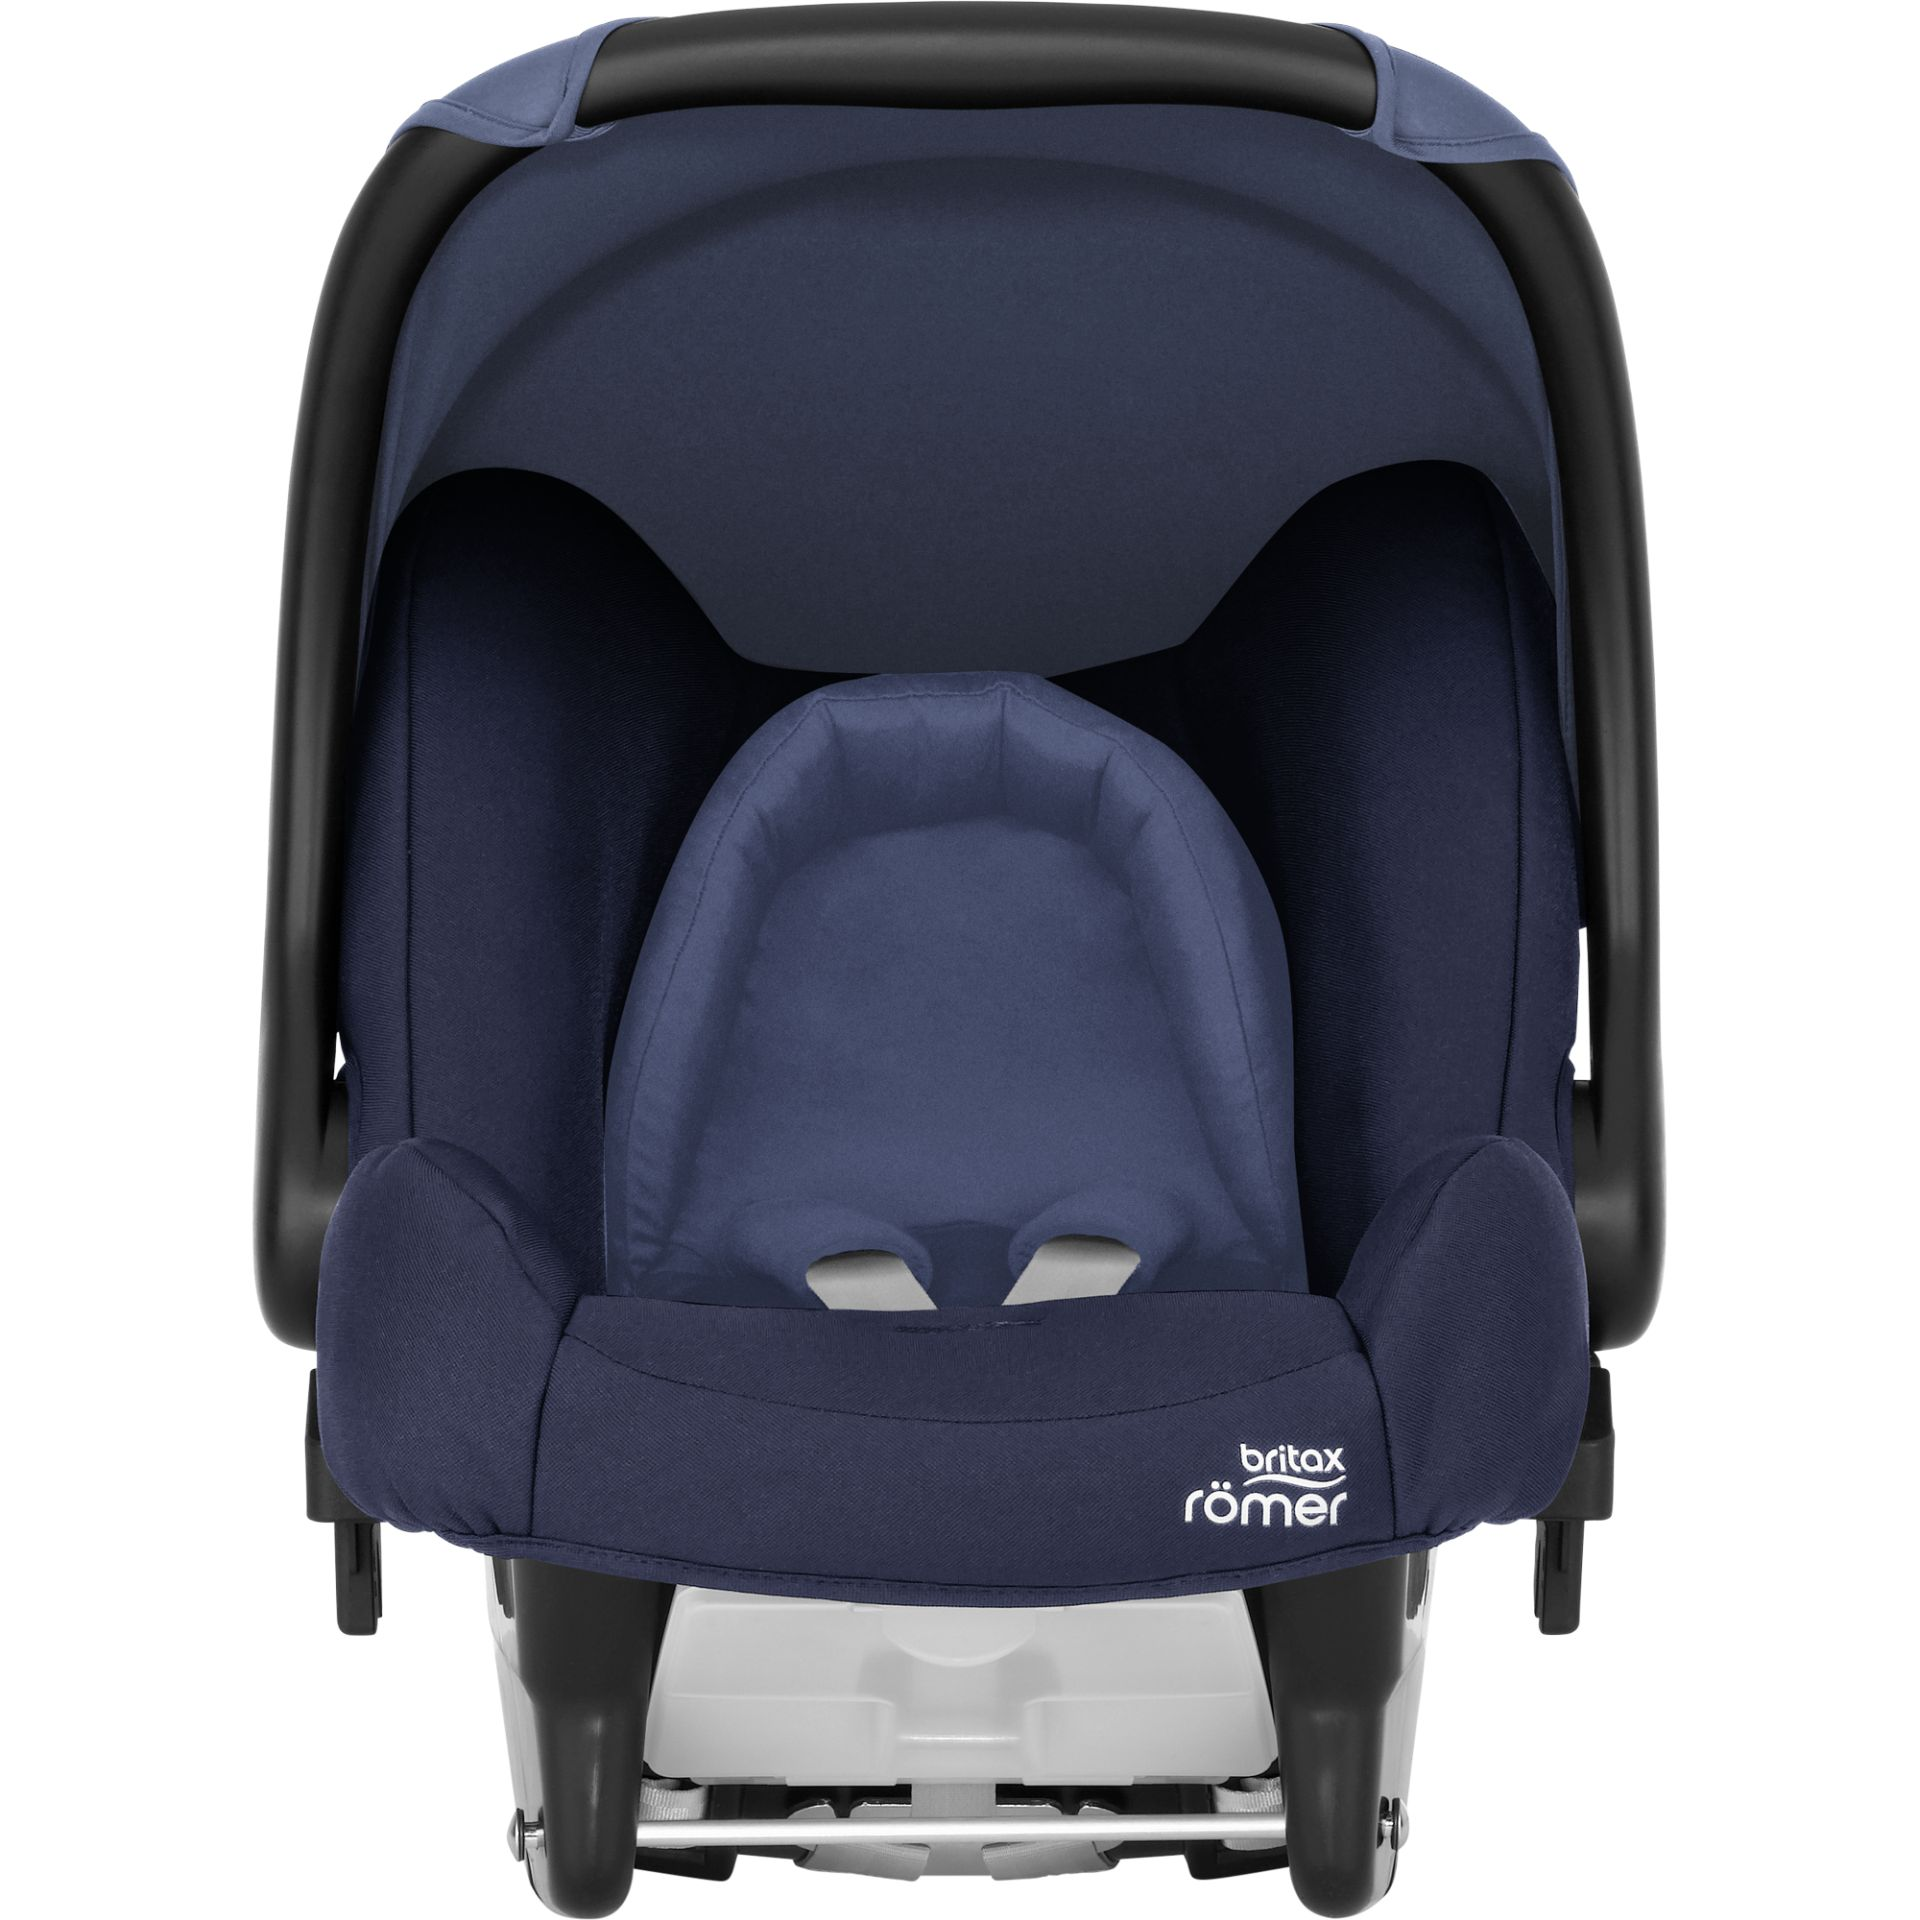 britax r mer infant car seat baby safe 2018 moonlight blue buy at kidsroom car seats. Black Bedroom Furniture Sets. Home Design Ideas